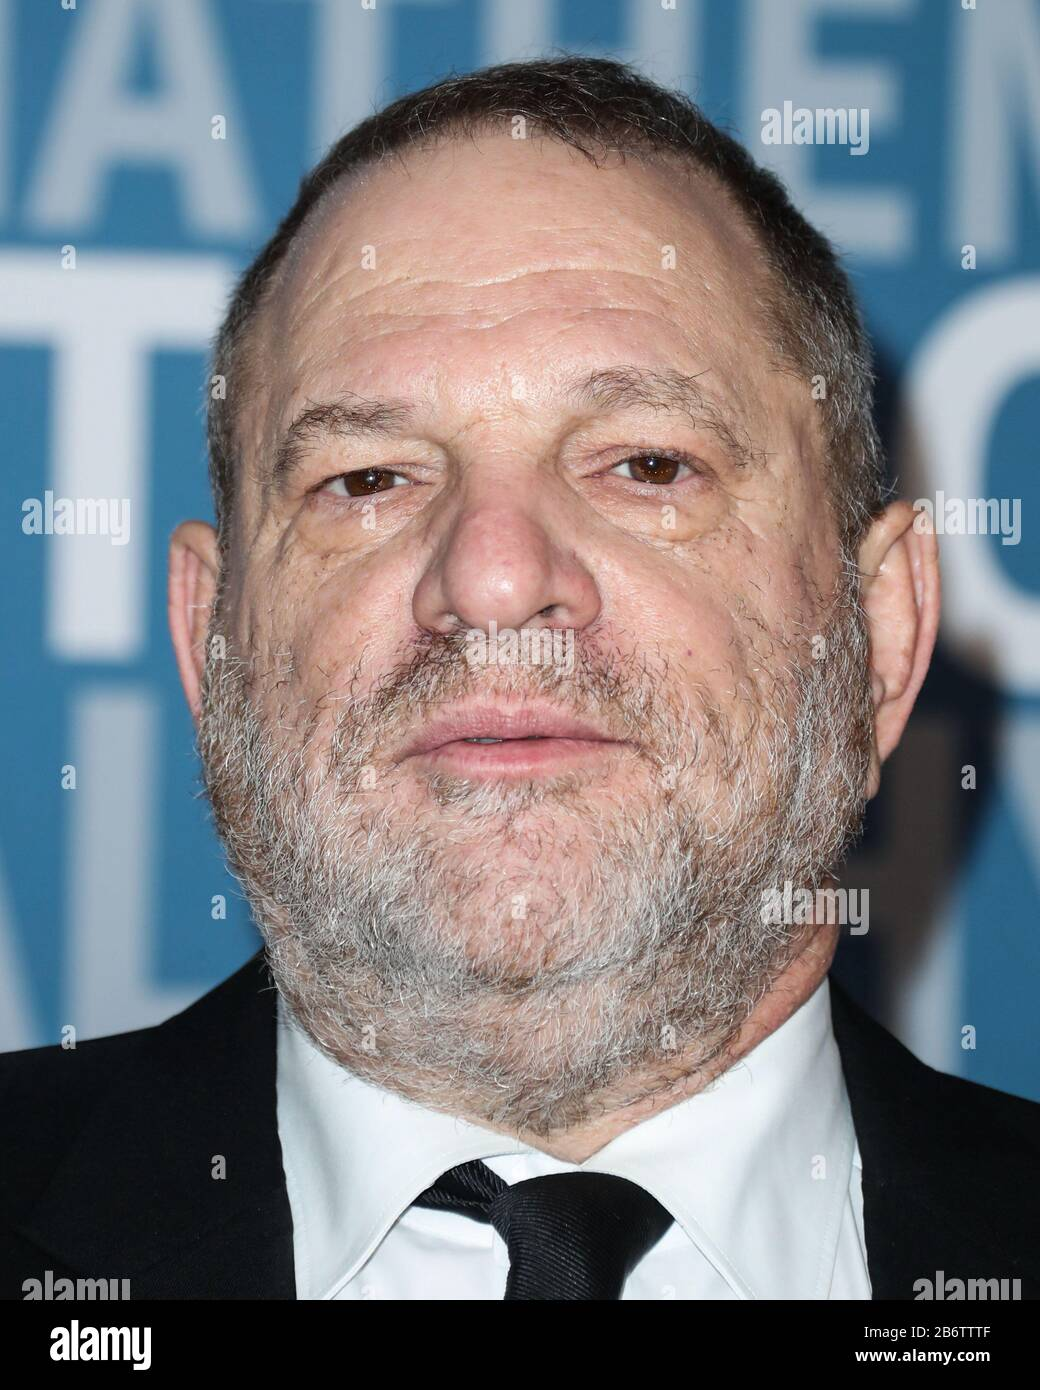 (FILE) 11th Mar 2020. Harvey Weinstein Sentenced to 23 Years in Prison. Harvey Weinstein will spend 23 years in a New York State prison after being sentenced by Supreme Court Judge James Burke on the morning of Wednesday, March 11, 2020. In pic: MOUNTAIN VIEW, SANTA CLARA, CALIFORNIA, USA - DECEMBER 04: Harvey Weinstein arrives at the 2017 Breakthrough Prize held at NASA Ames Research Center on December 4, 2016 in Mountain View, Santa Clara, California, United States. Credit: Image Press Agency/Alamy Live News Stock Photo